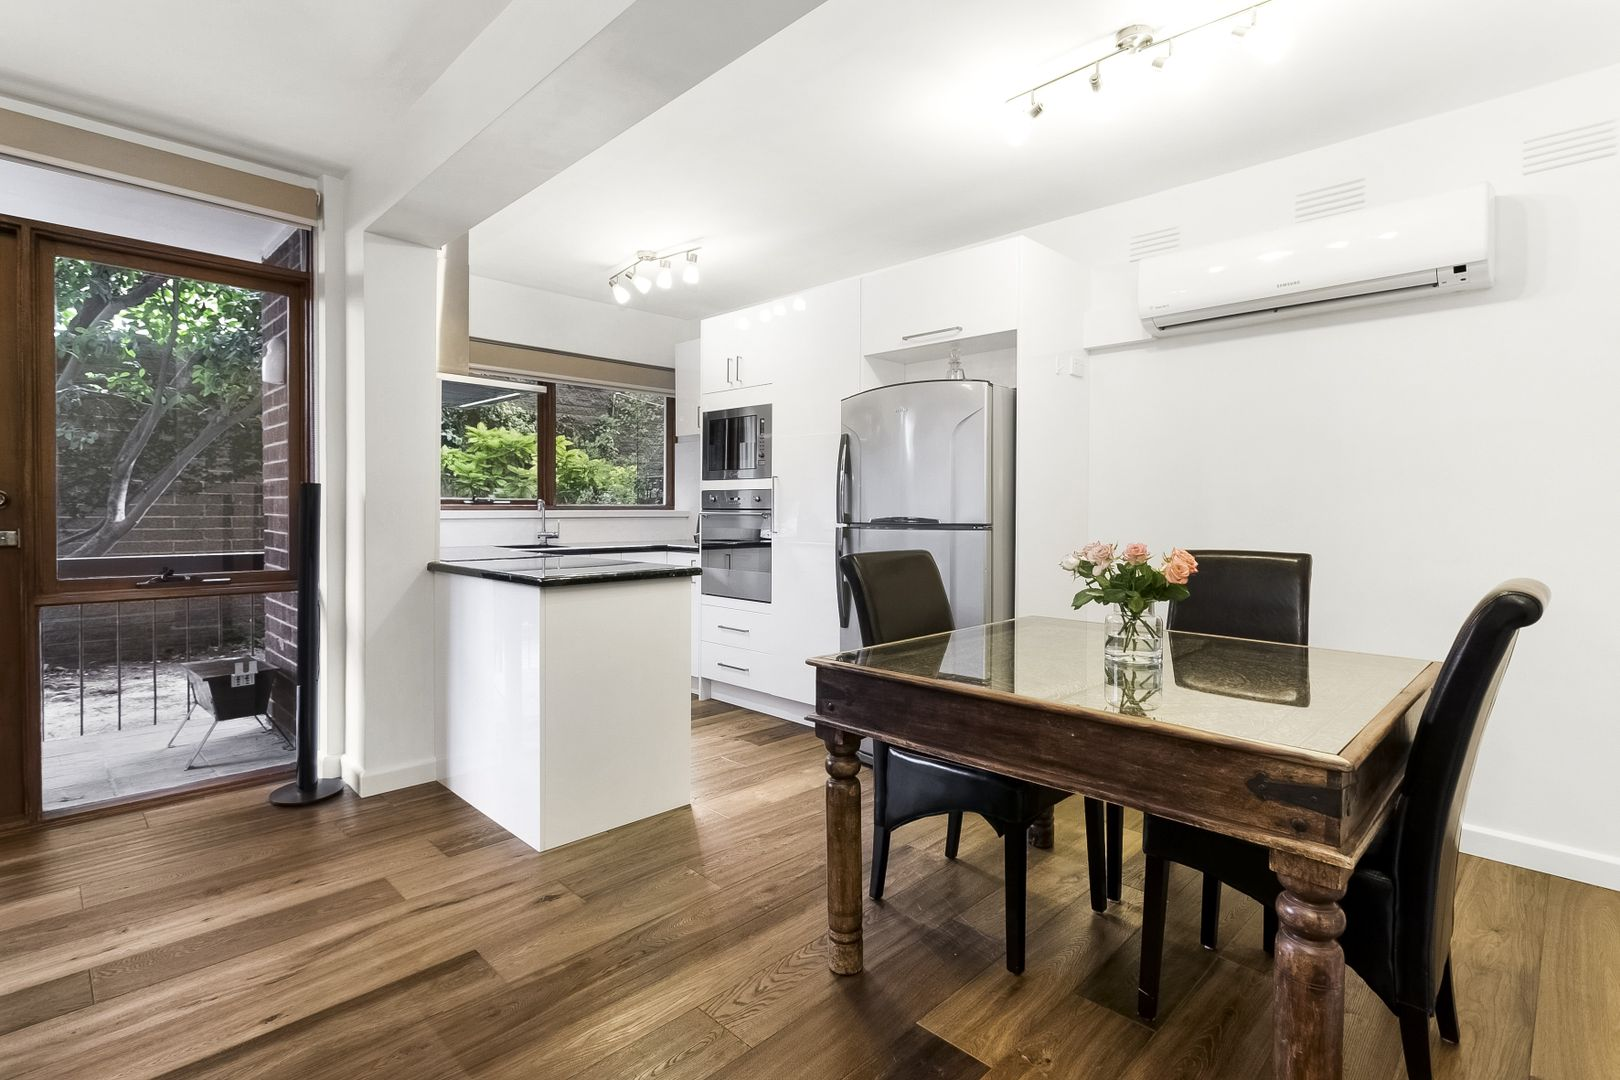 66/50 King William Street, Fitzroy VIC 3065, Image 1